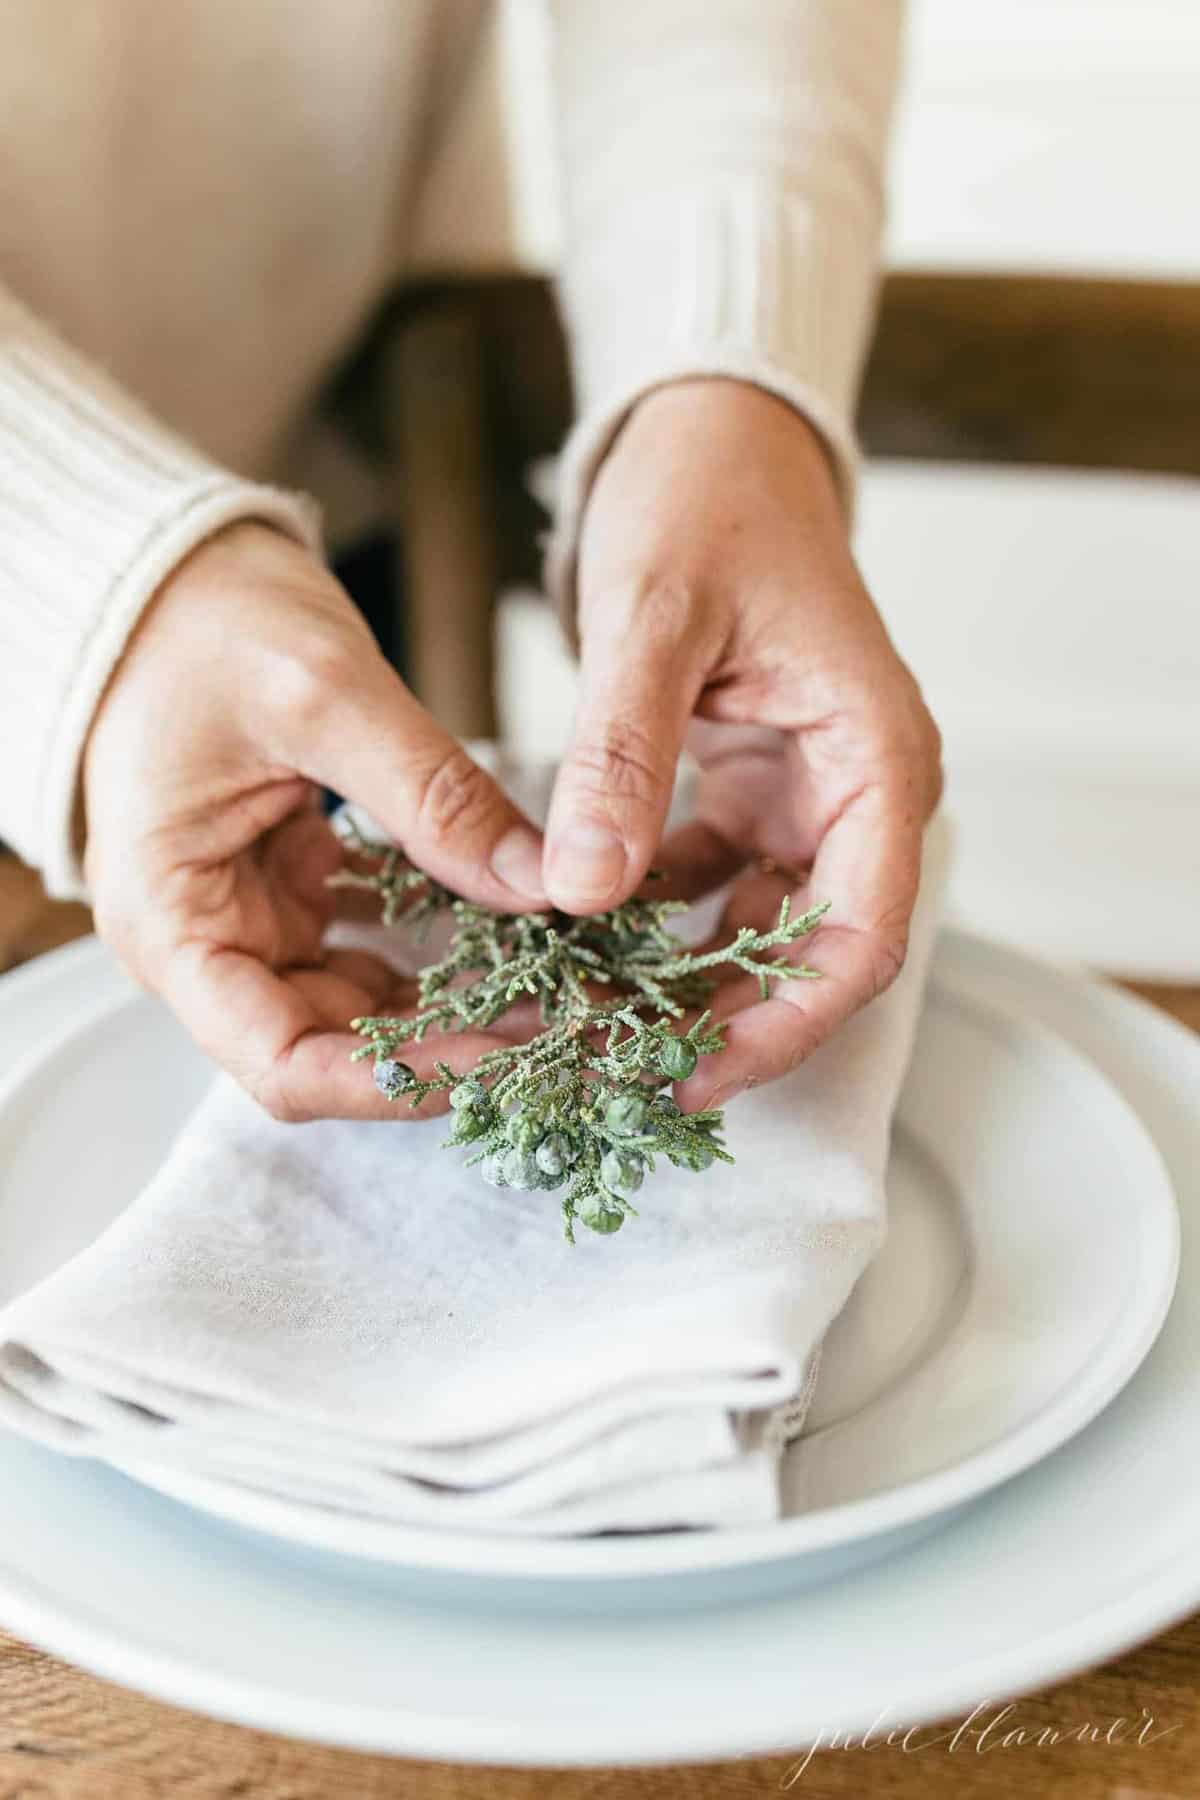 hands holding juniper putting it on a place setting